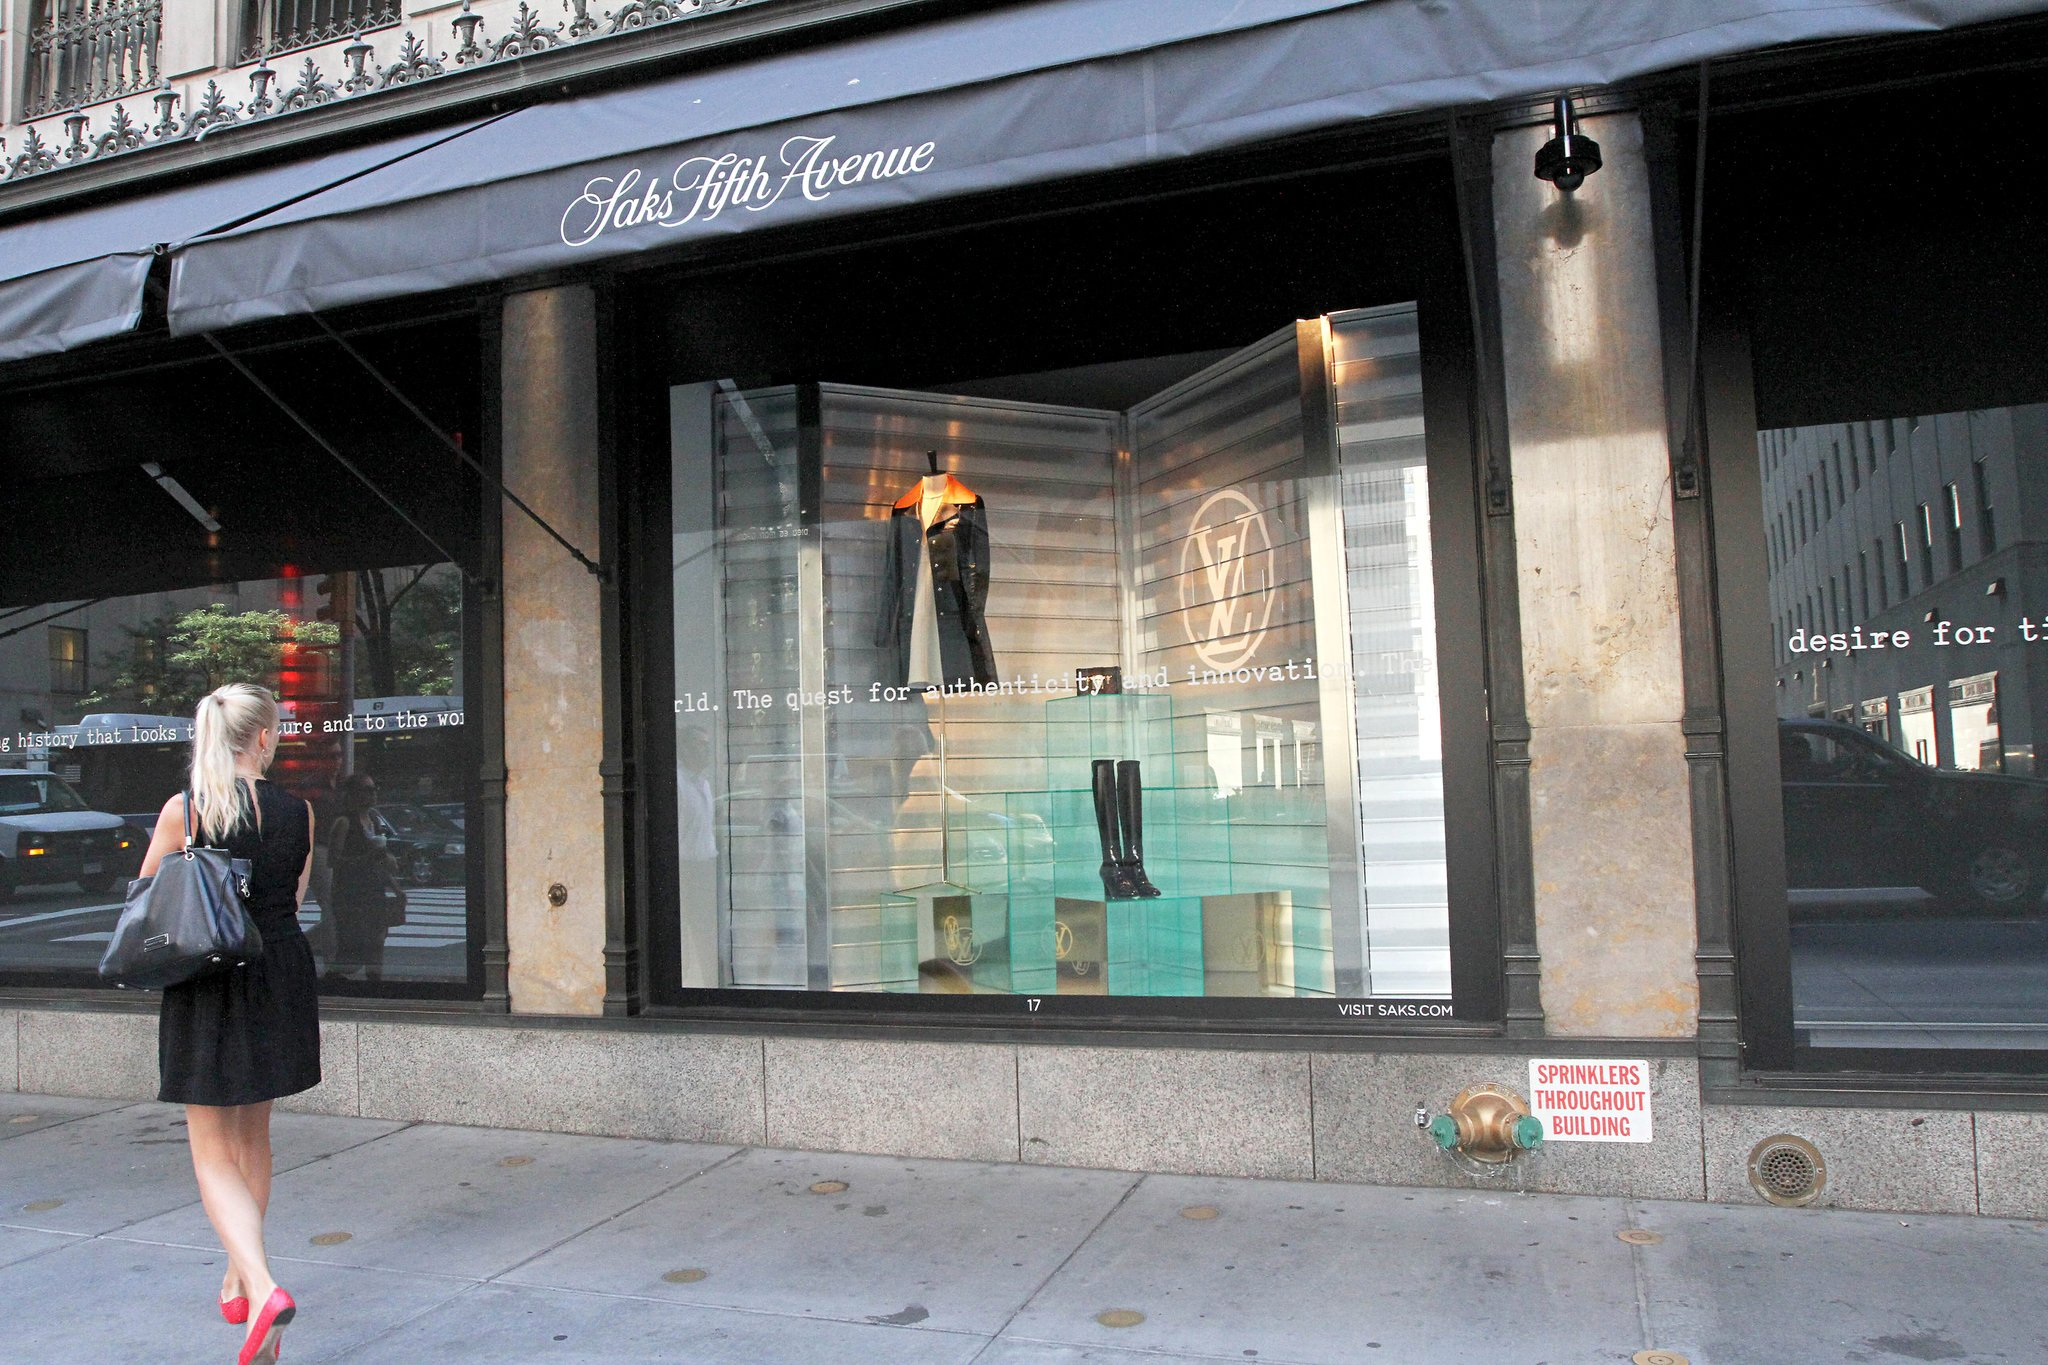 Hear! Hear! Saks Fifth Avenue's display windows scream Louis Vuitton